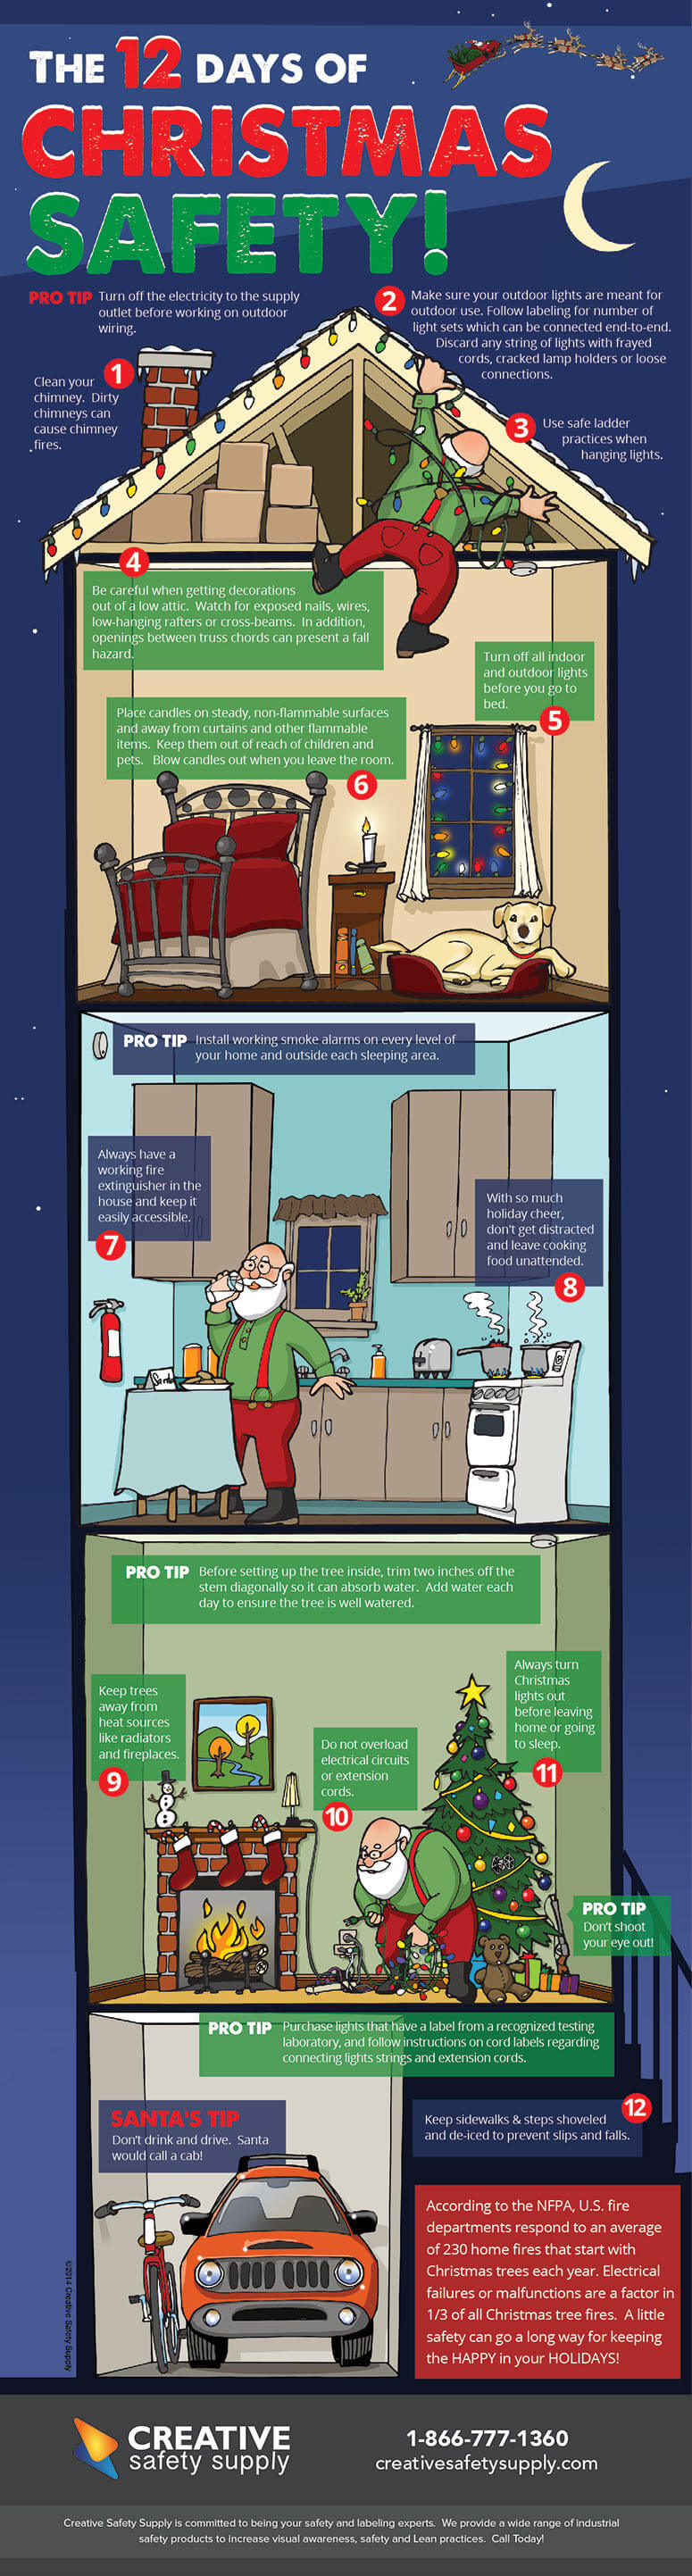 Infographic The 12 Days Of Christmas Safety Creative Supply To Install New Circuits For Lights Root Electric Services Text From